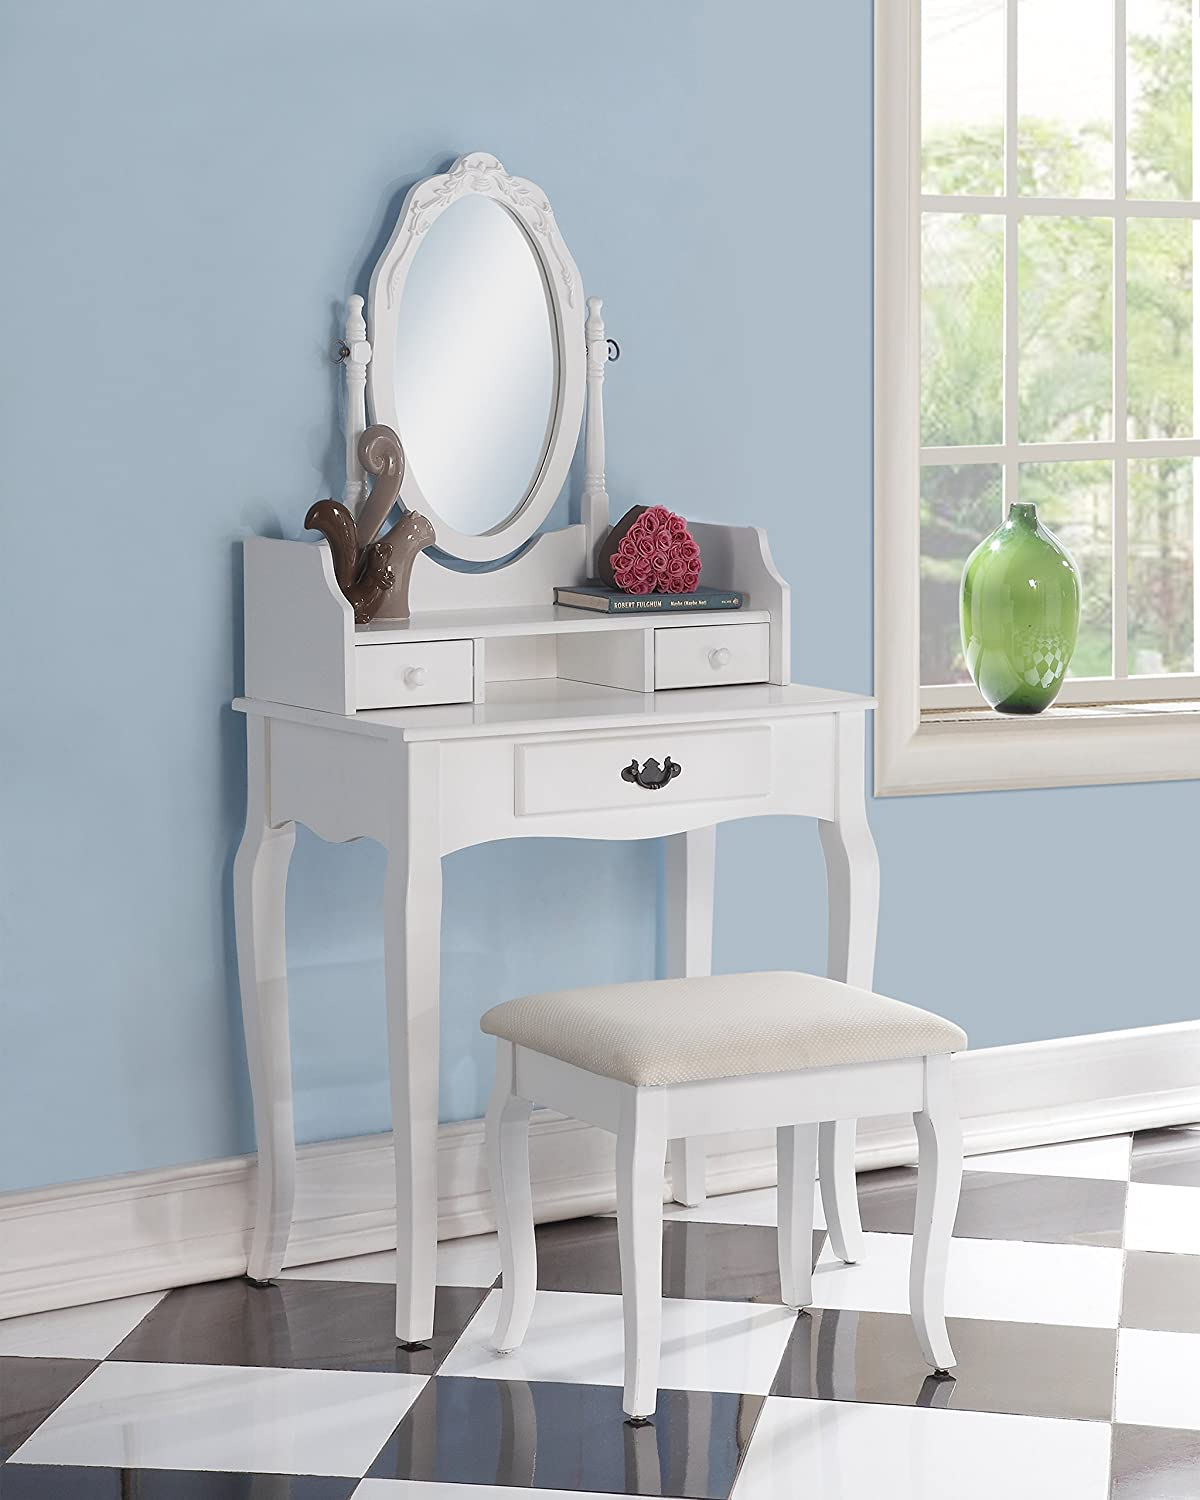 3-Piece Wood Make-Up Mirror Carved Vanity Dresser Table and Stool Set, White